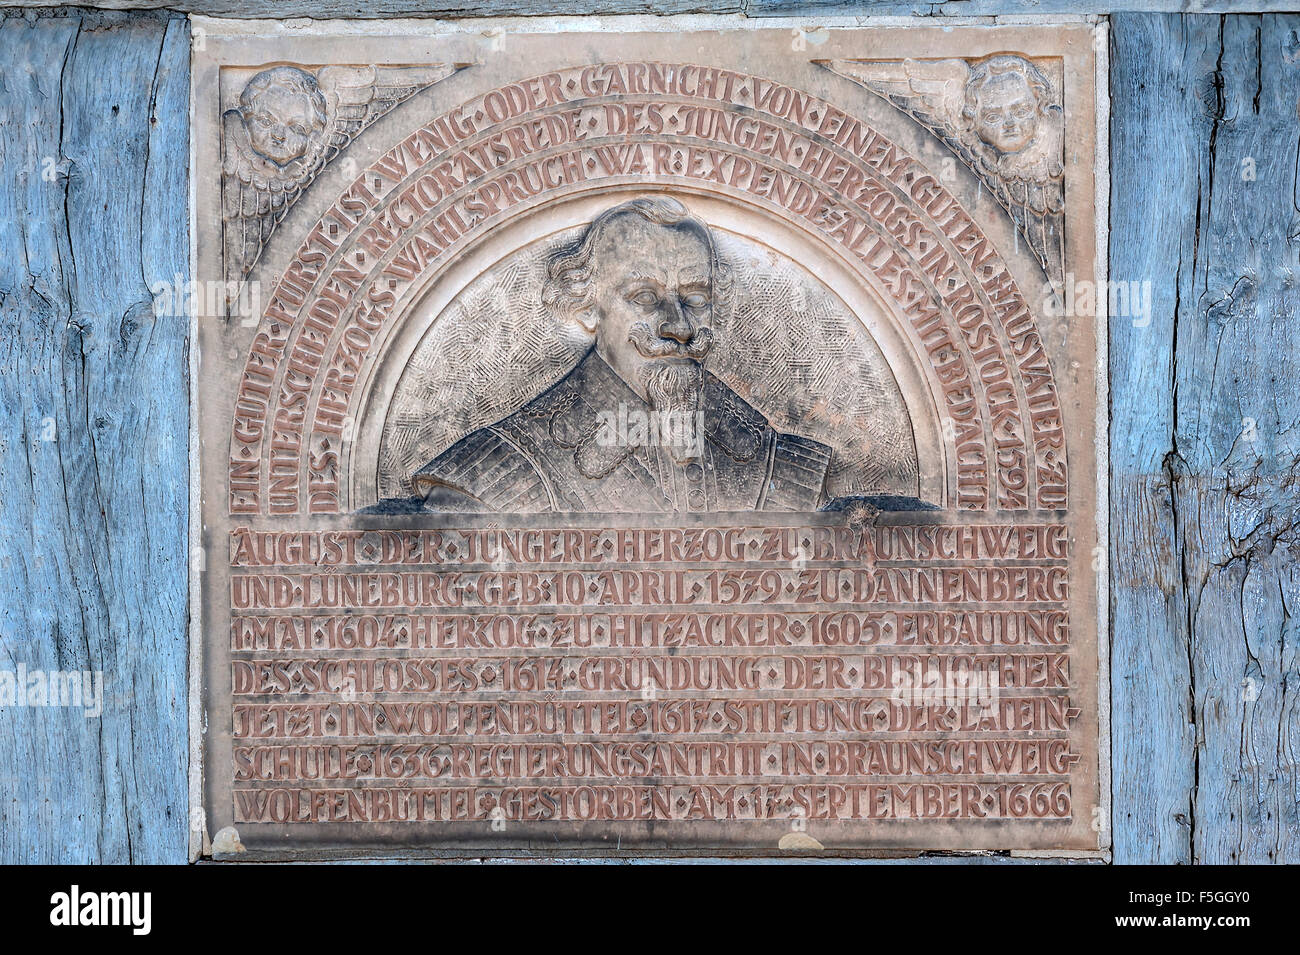 Plaque to August the Younger, Duke of Brunswick and Luneburg, 1579-1666, Lower Saxony, Hitzacker, Germany - Stock Image